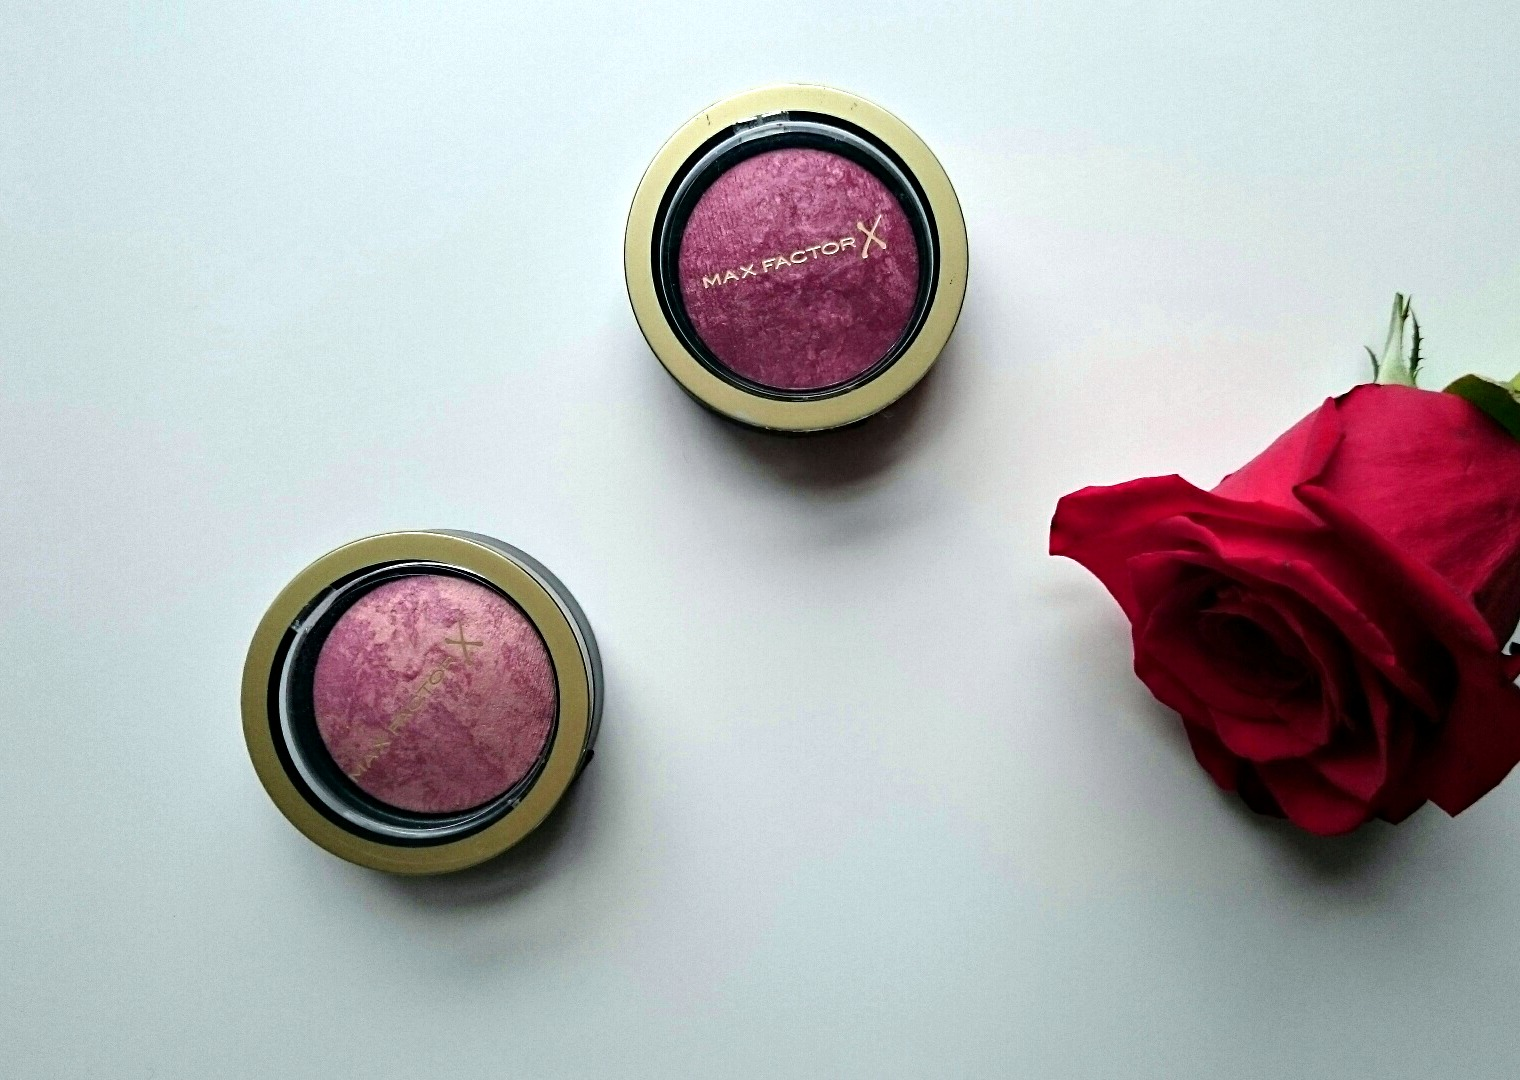 Max Factor Creme Puff Blush Seductive Pink